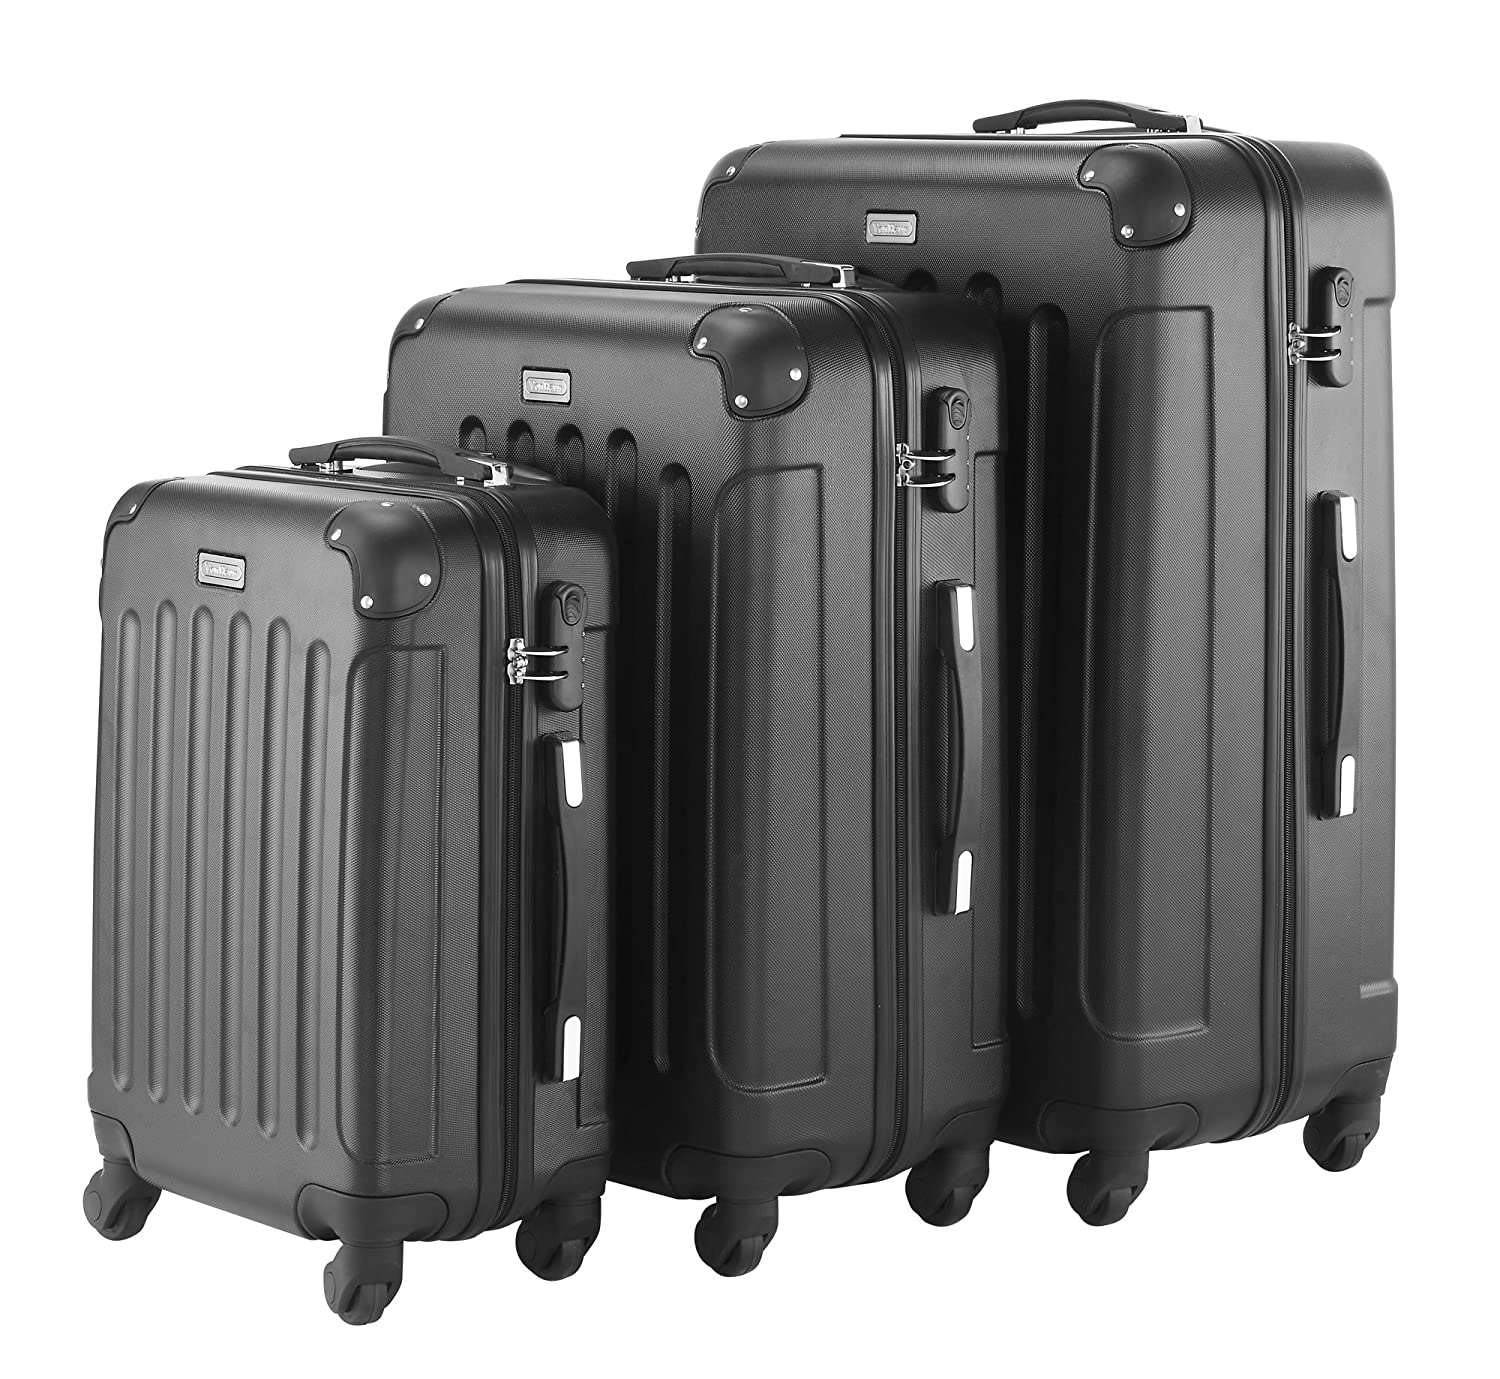 Amazon.com | VonHaus 3 Piece Extra Strong ABS Luggage Set Black ...